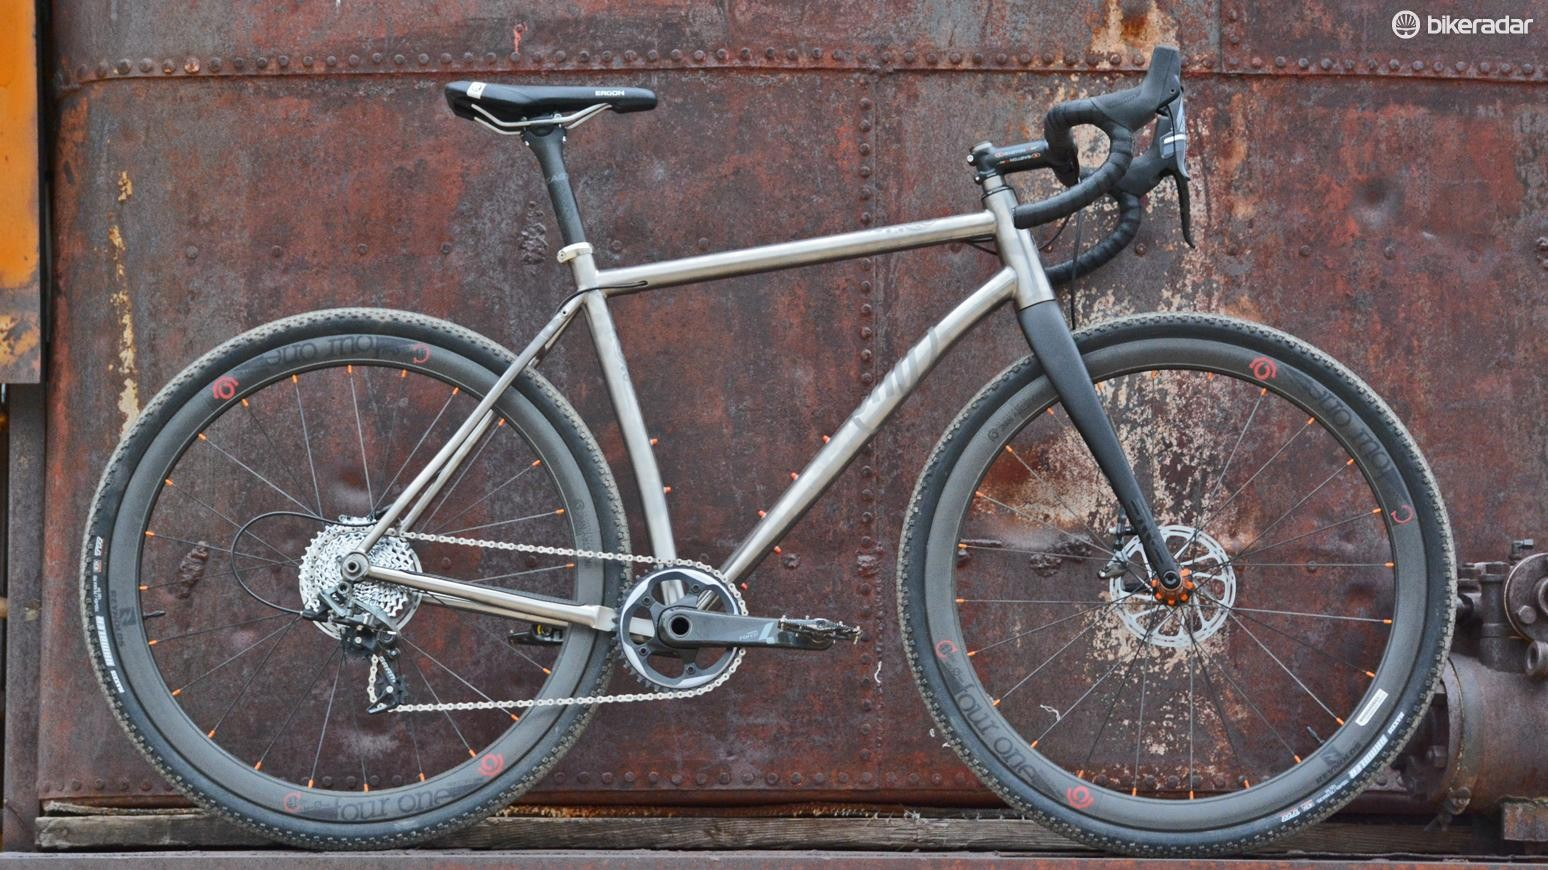 Ready to take on any gravel road, meet the titanium Why Cycles R+